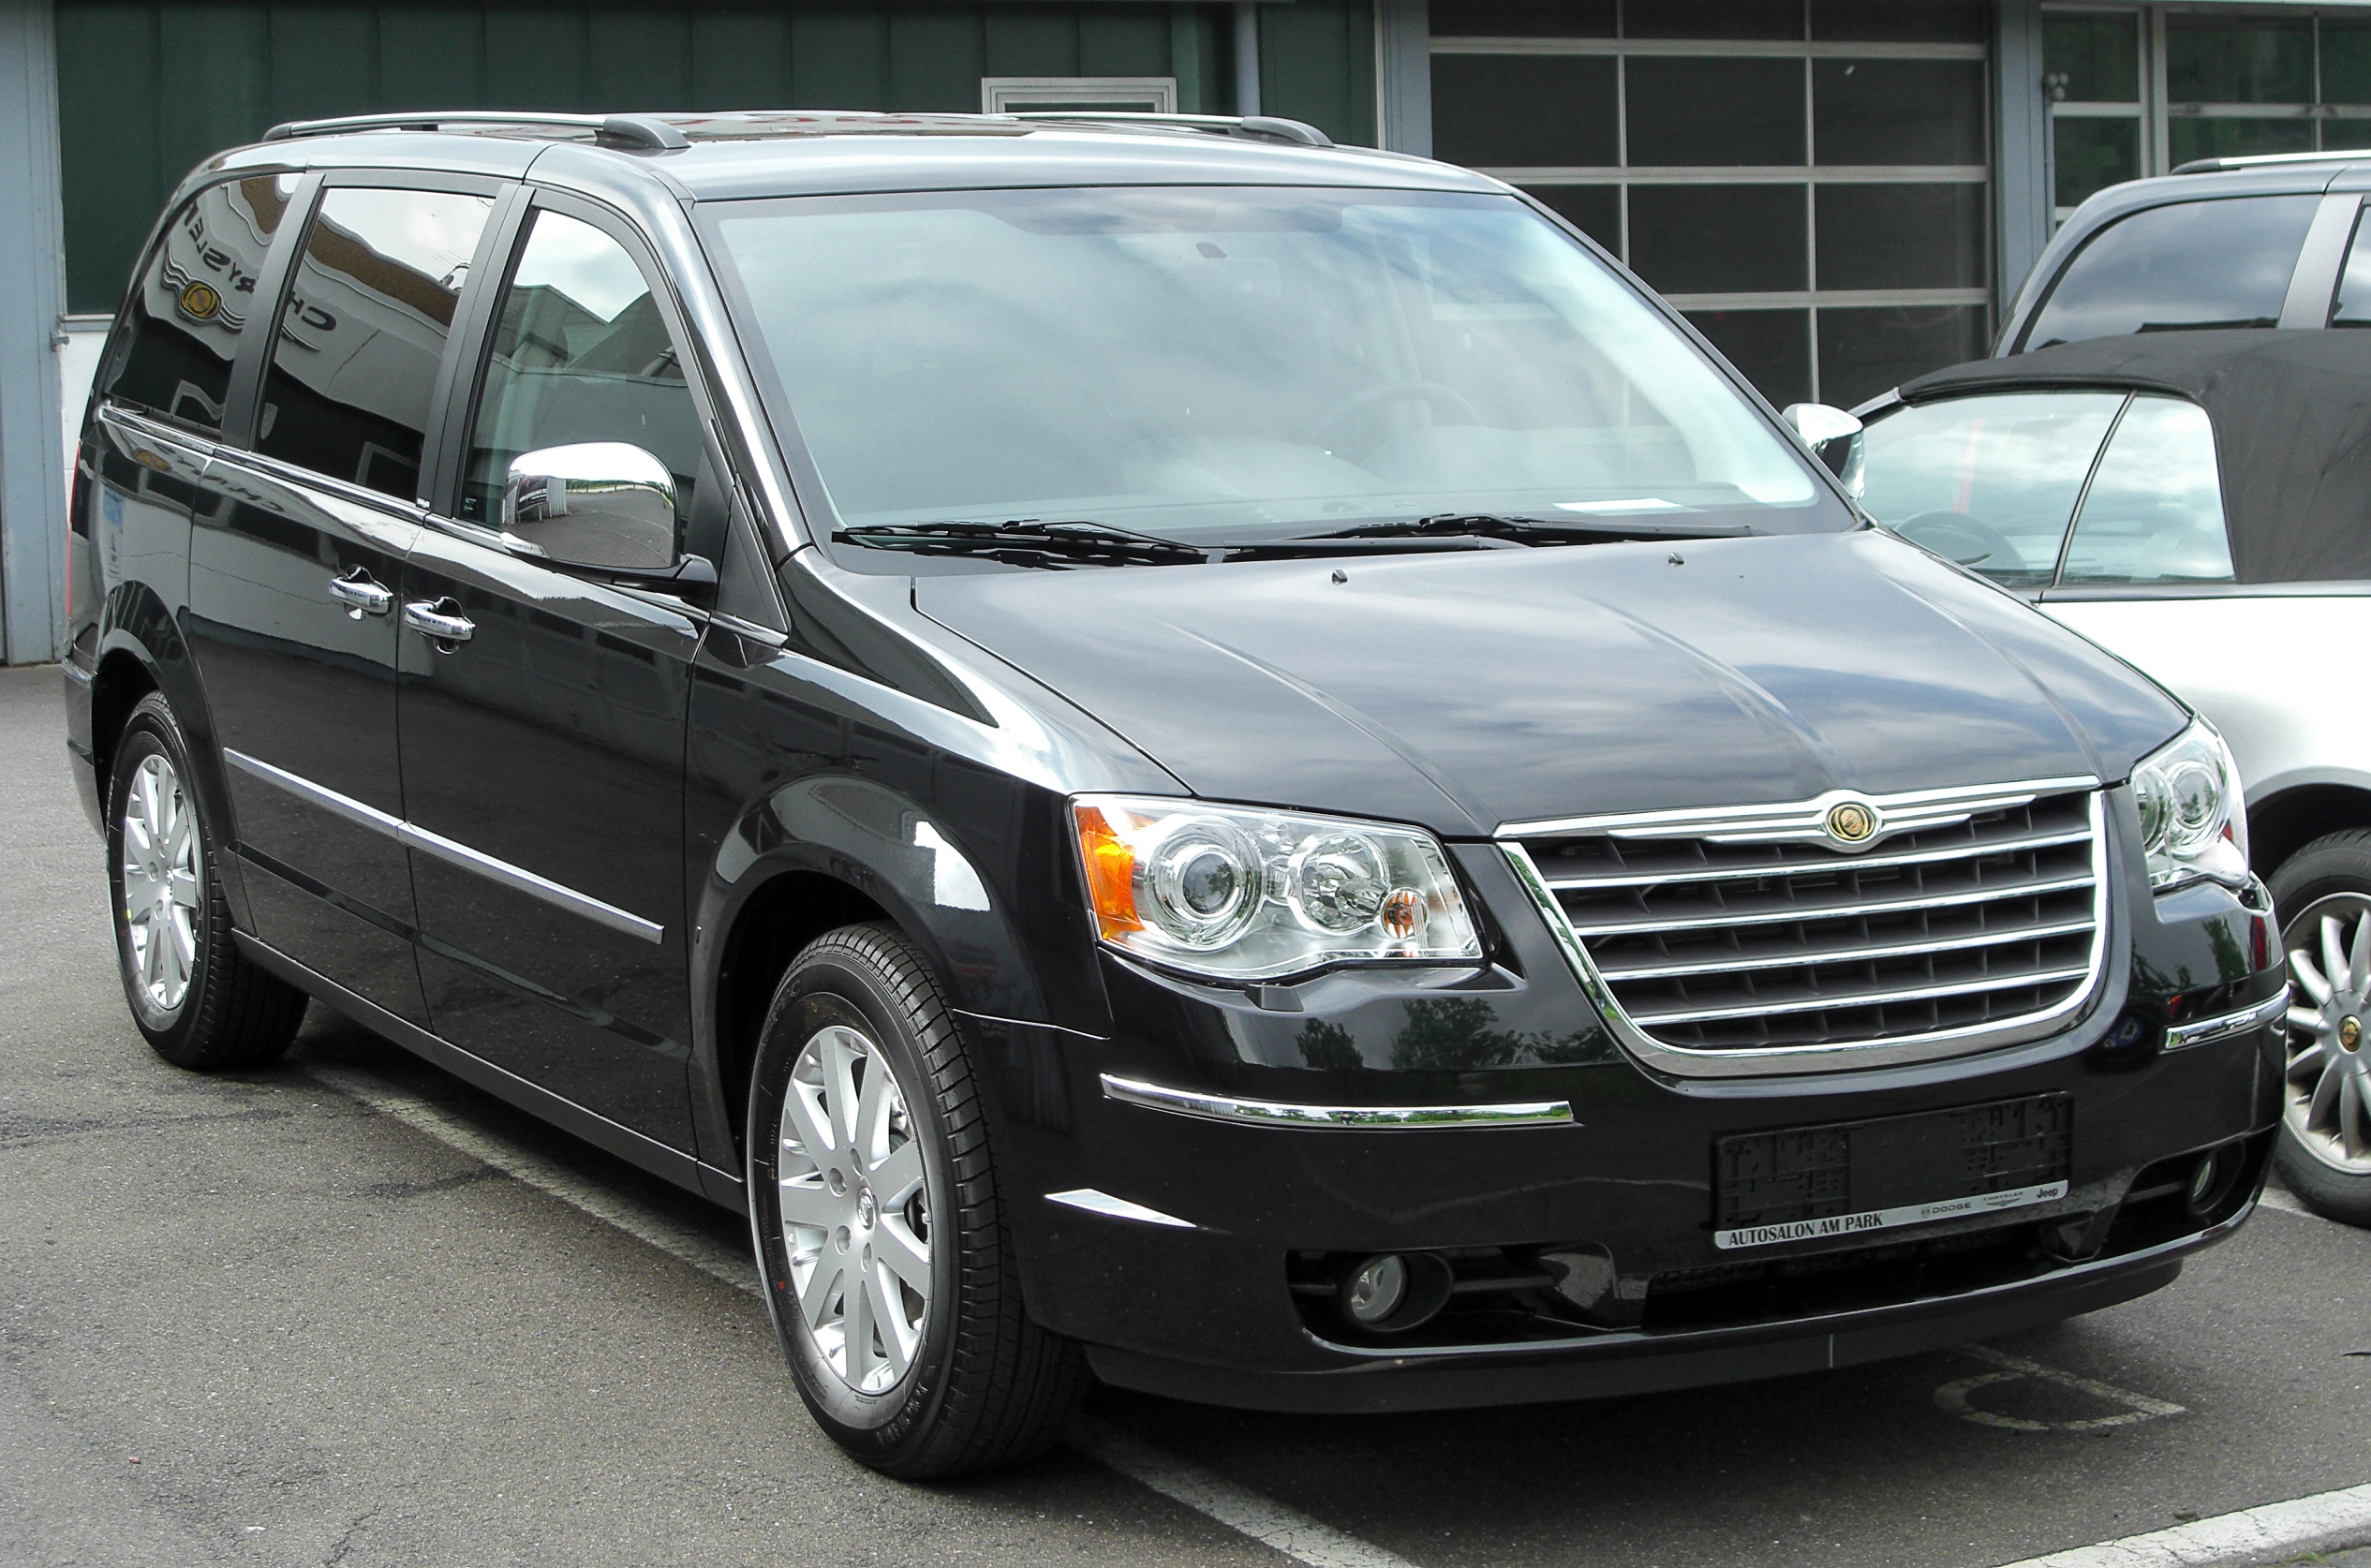 file chrysler grand voyager v front wikipedia. Black Bedroom Furniture Sets. Home Design Ideas